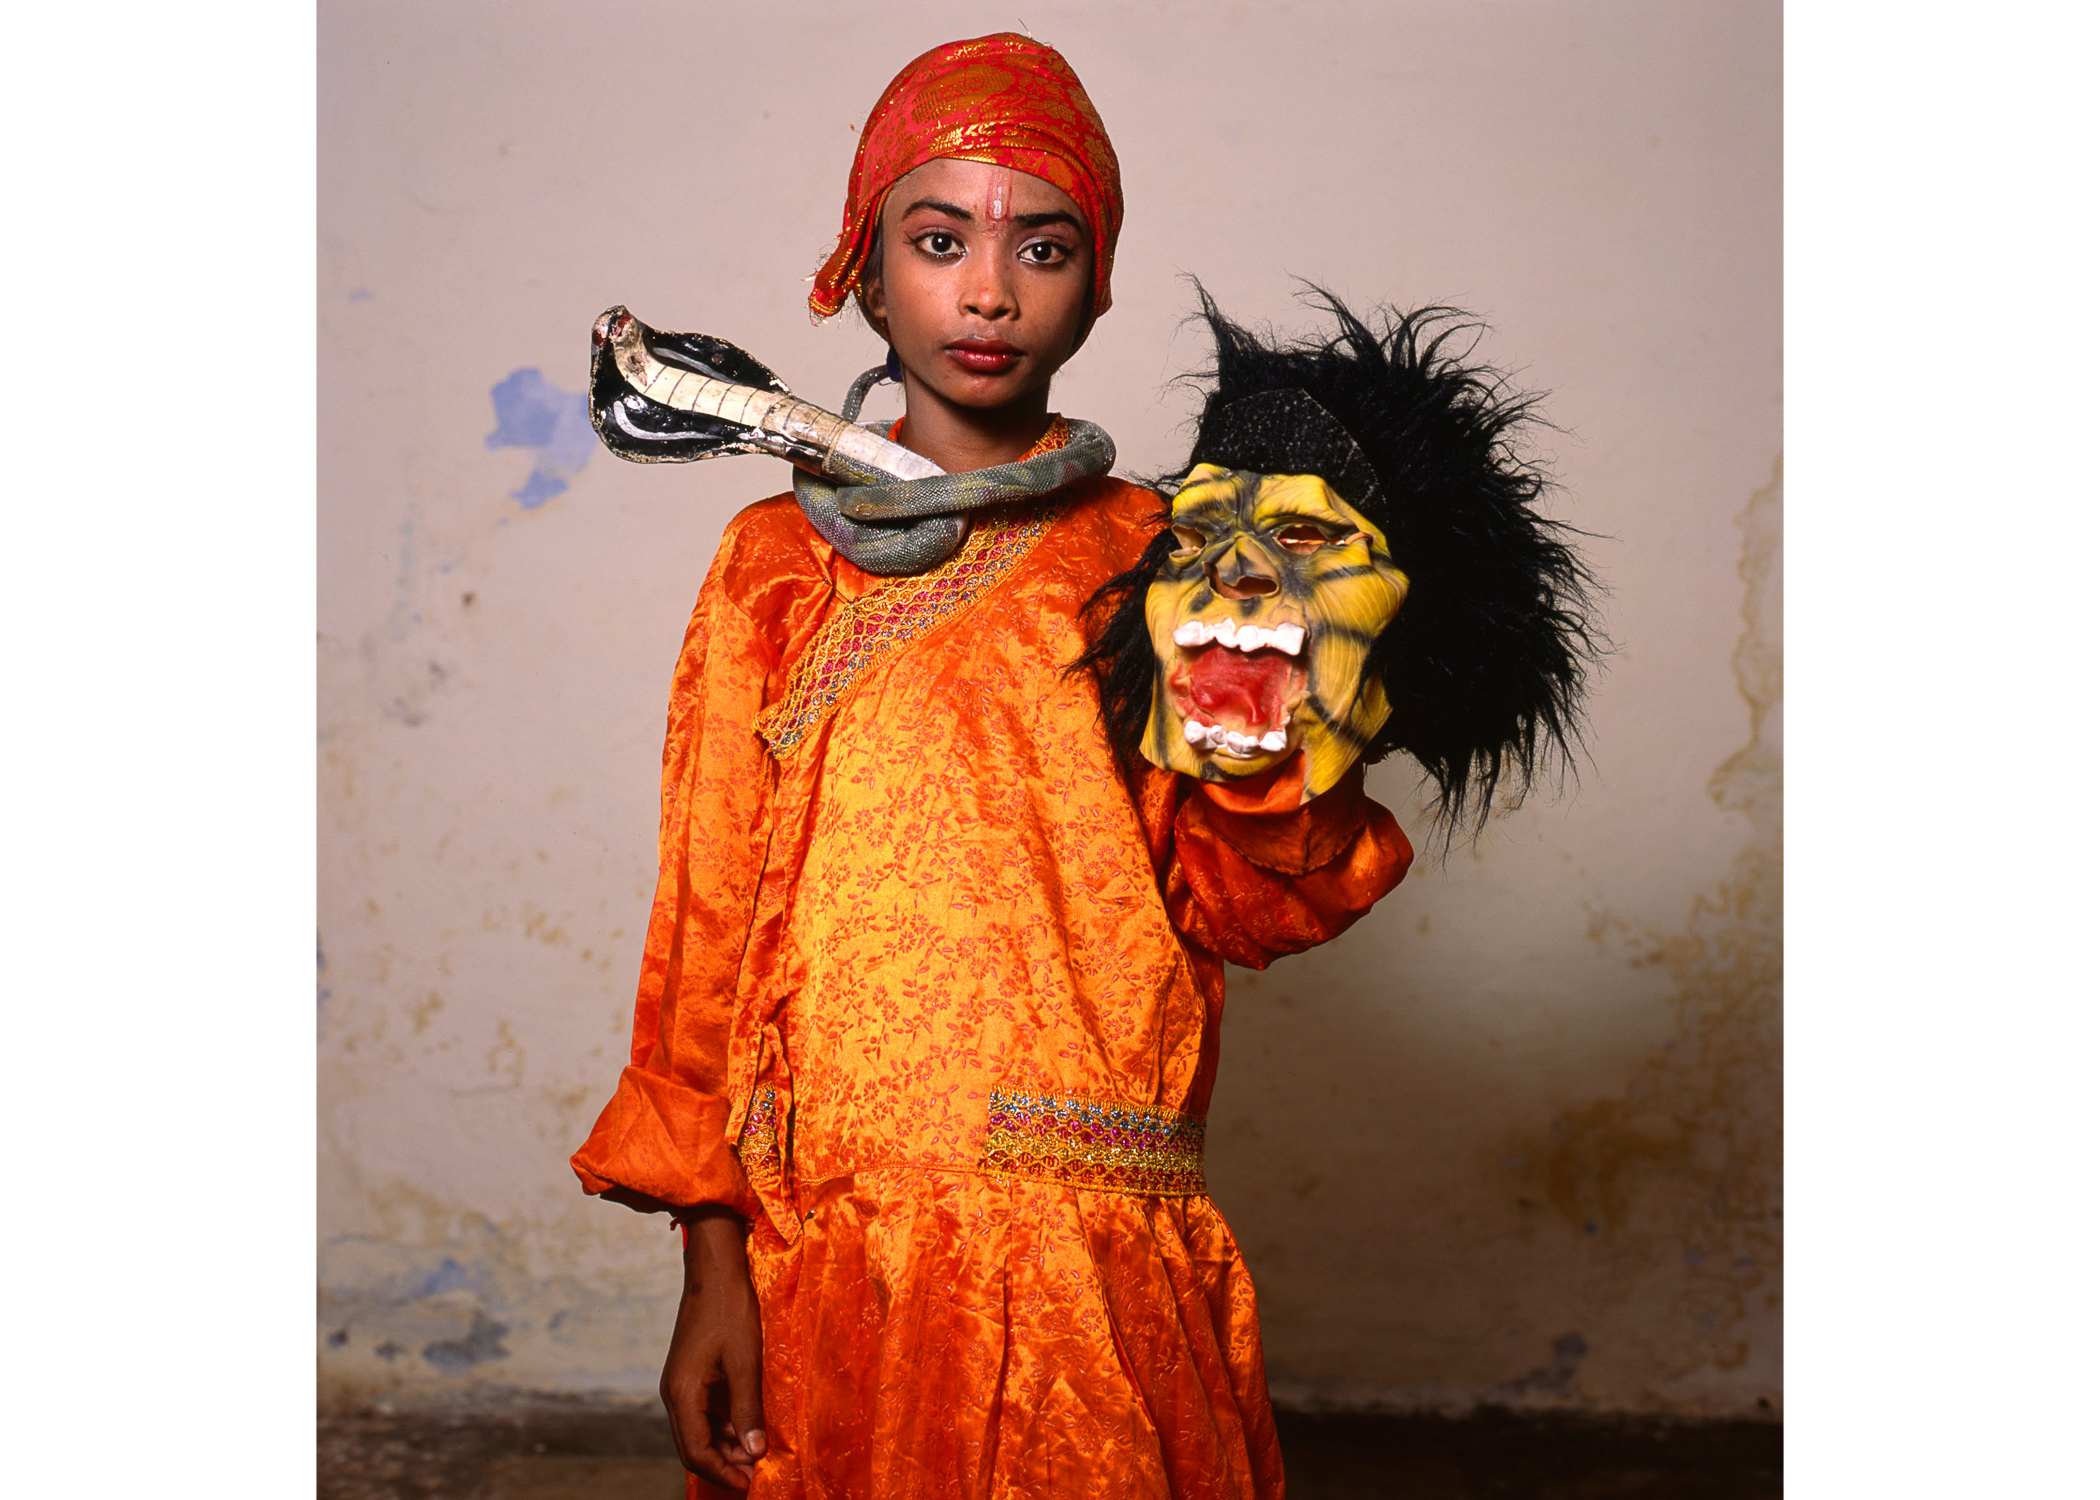 "Image above: ©Phyllis Galembo, Child with Monster Mask, India, 2014, 30 x 30"" Fujiflex print / Courtesy of sepiaEYE Gallery"